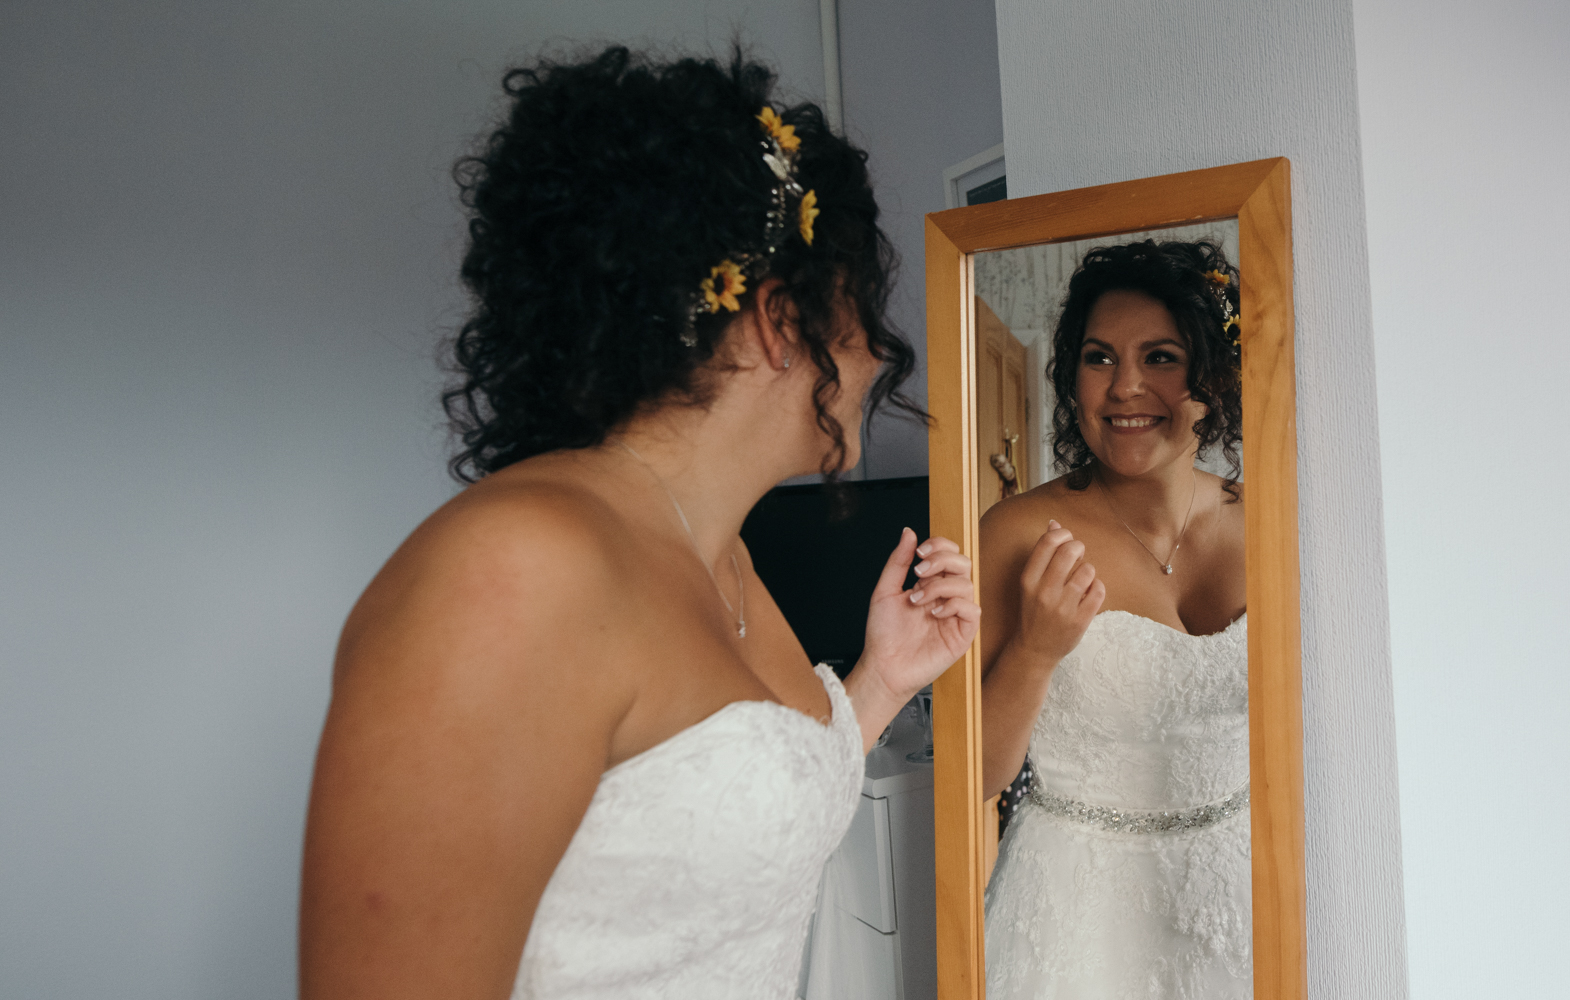 The bride admiring her look in the mirror wearing her wedding dress